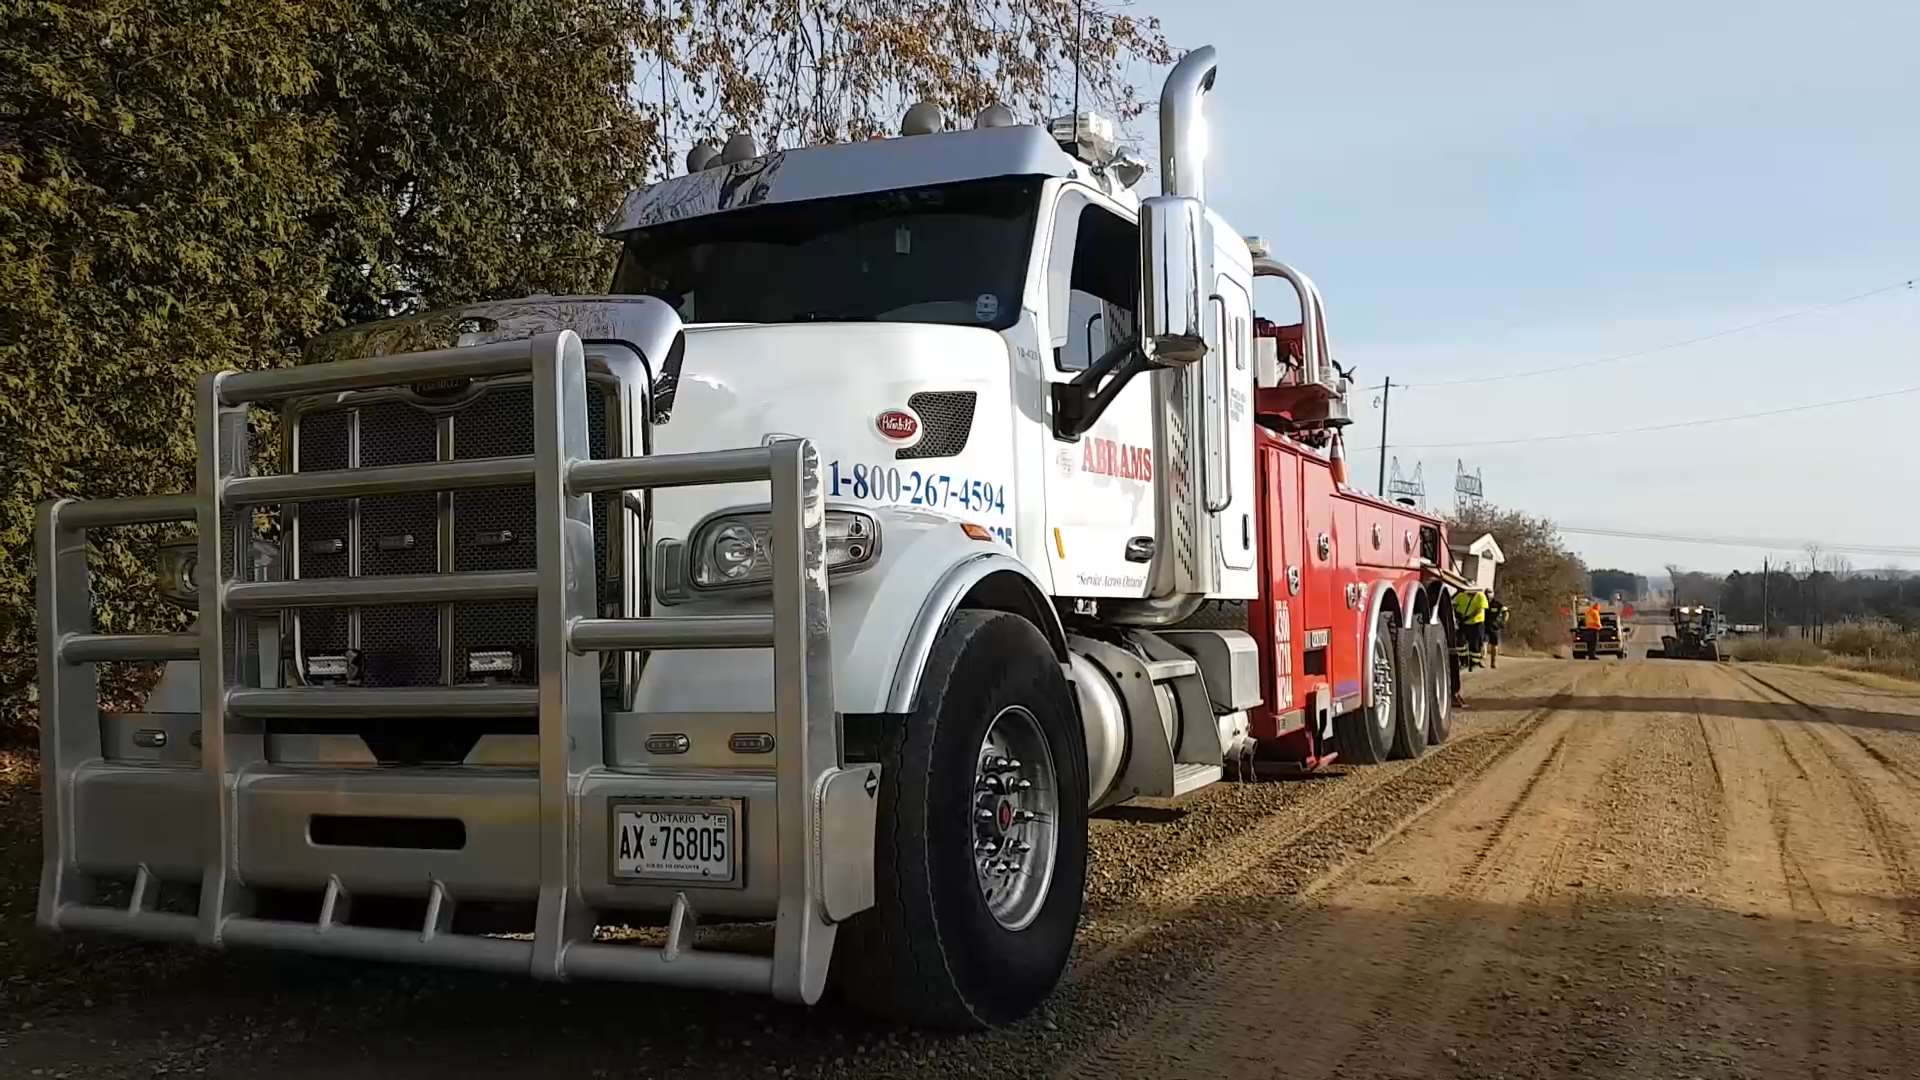 Trailer winching done by a rotator